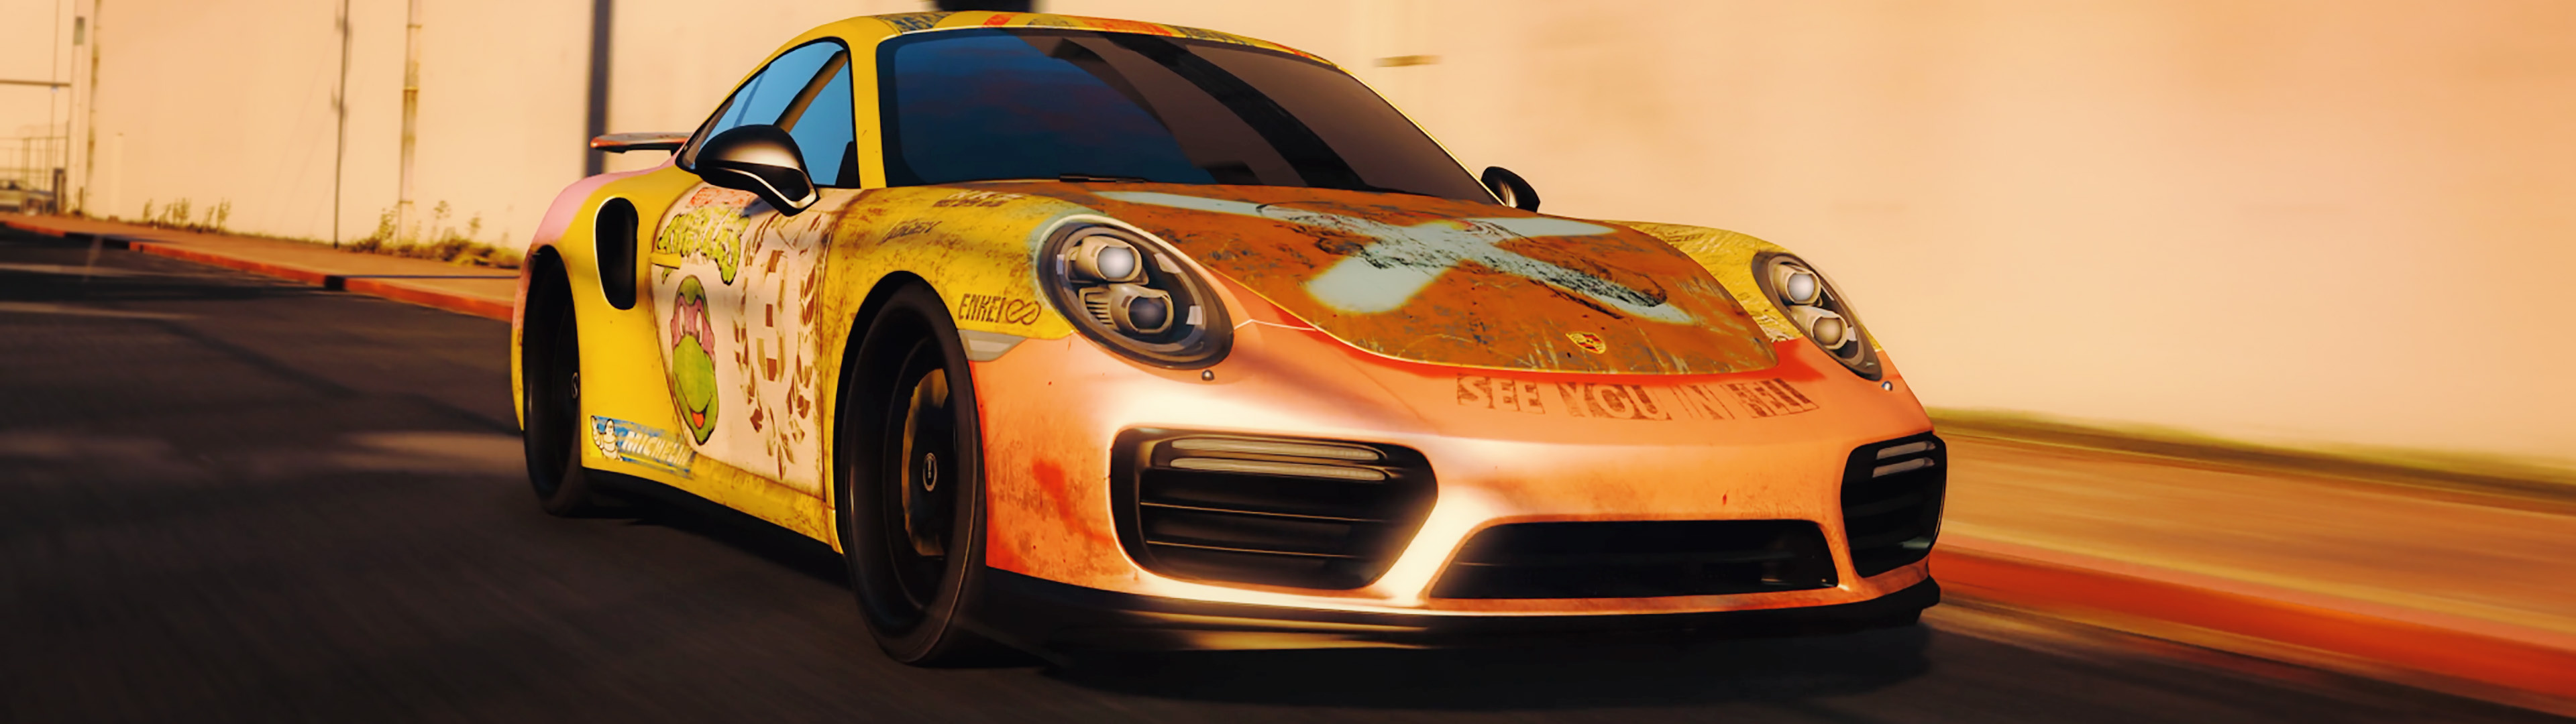 2016 porsche 911 turbo s rust livery gta5. Black Bedroom Furniture Sets. Home Design Ideas